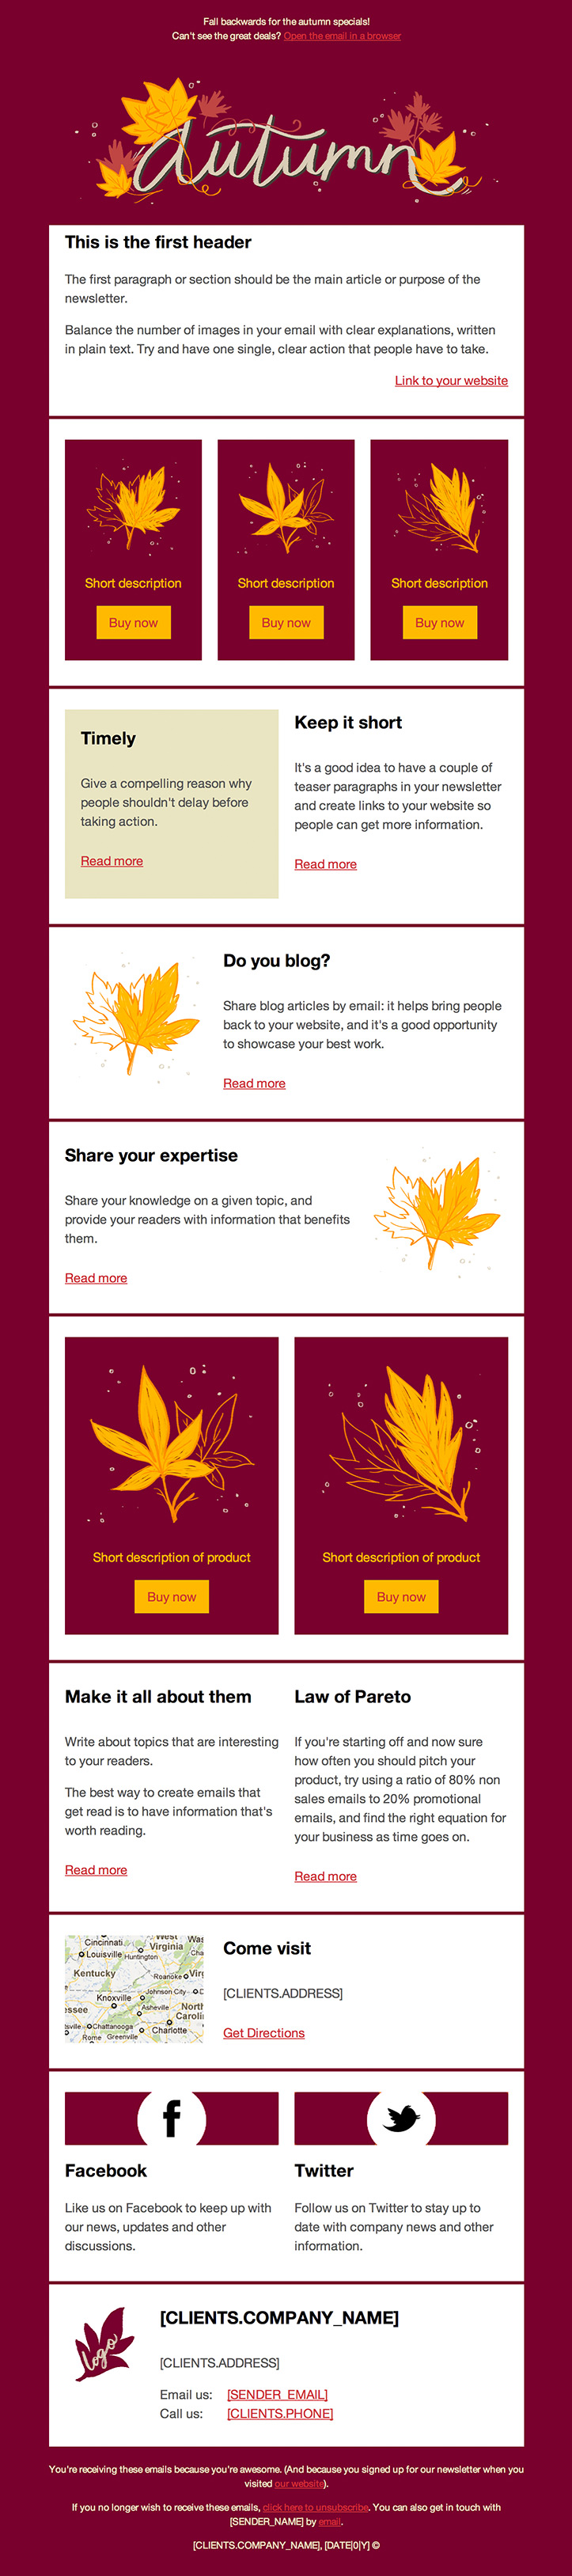 autumn red email eemplate